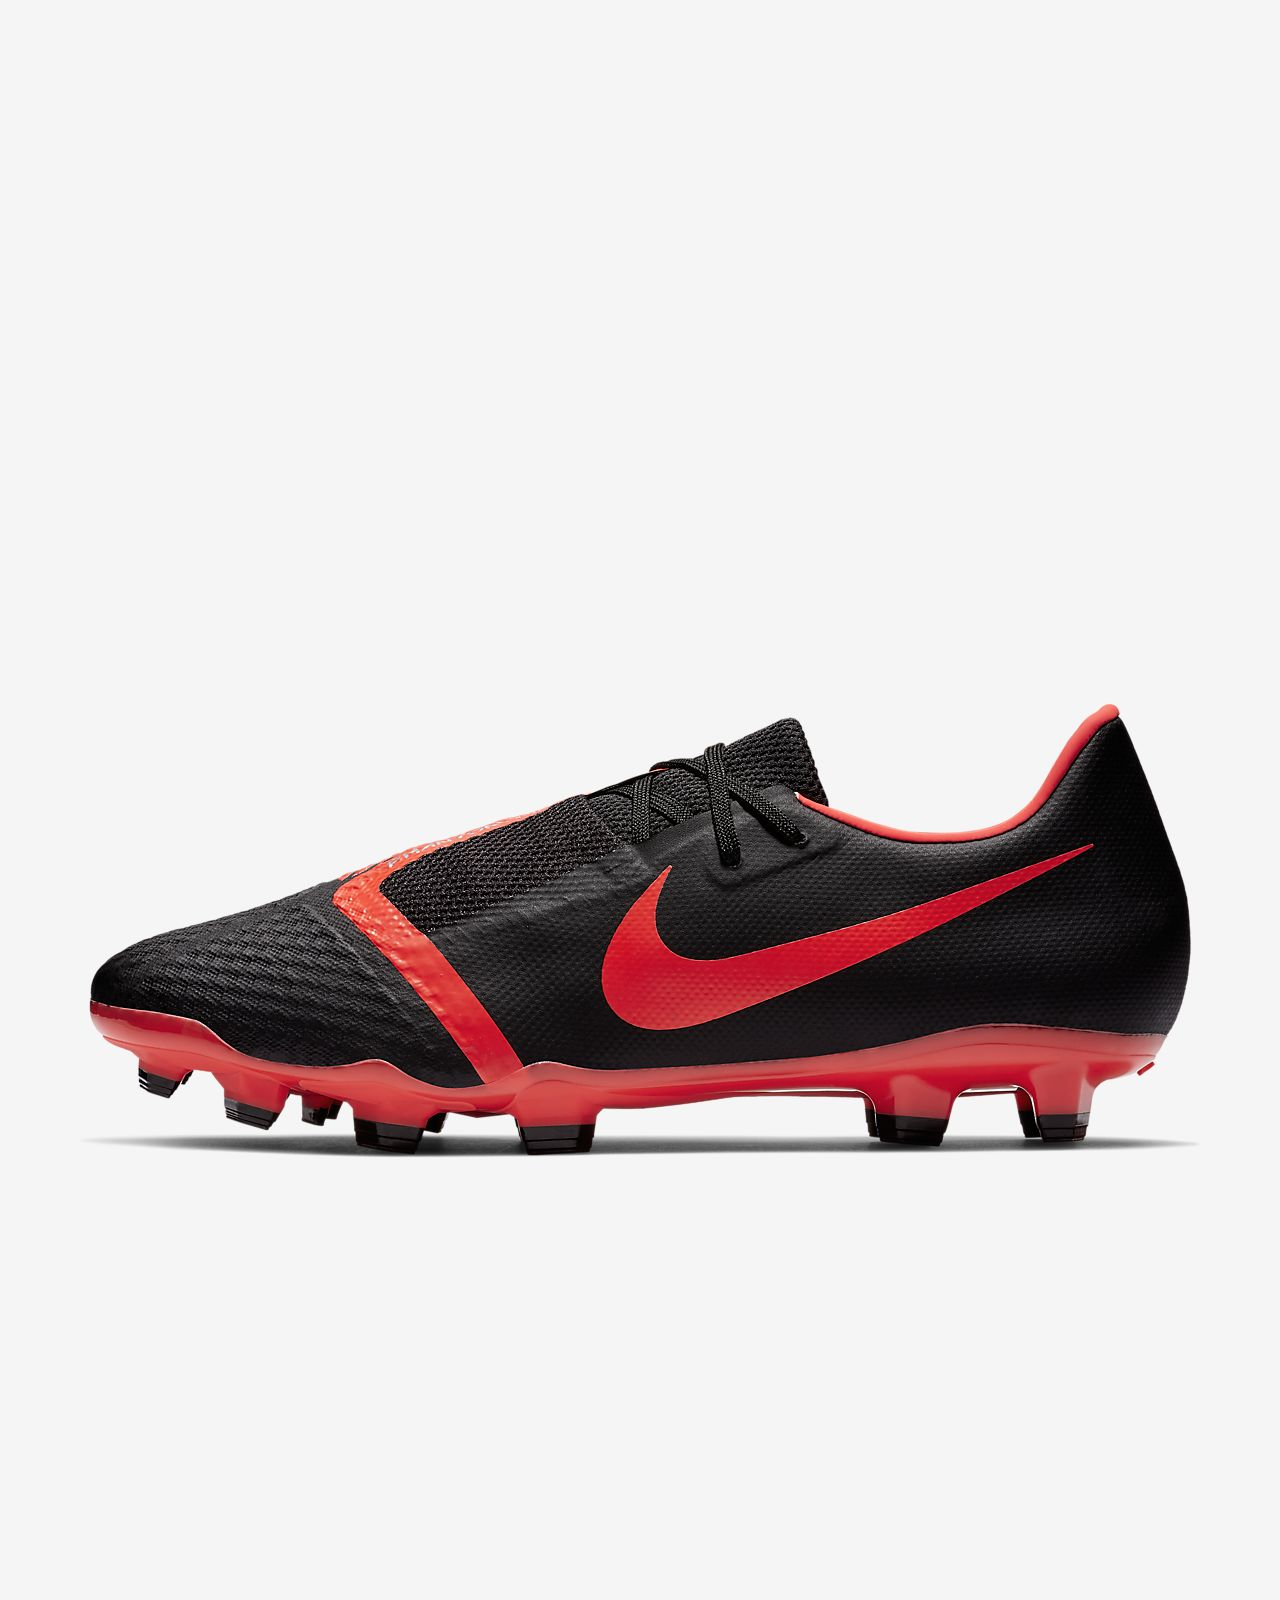 wholesale outlet new appearance sale online Nike Phantom Venom Academy FG Firm-Ground Football Boot